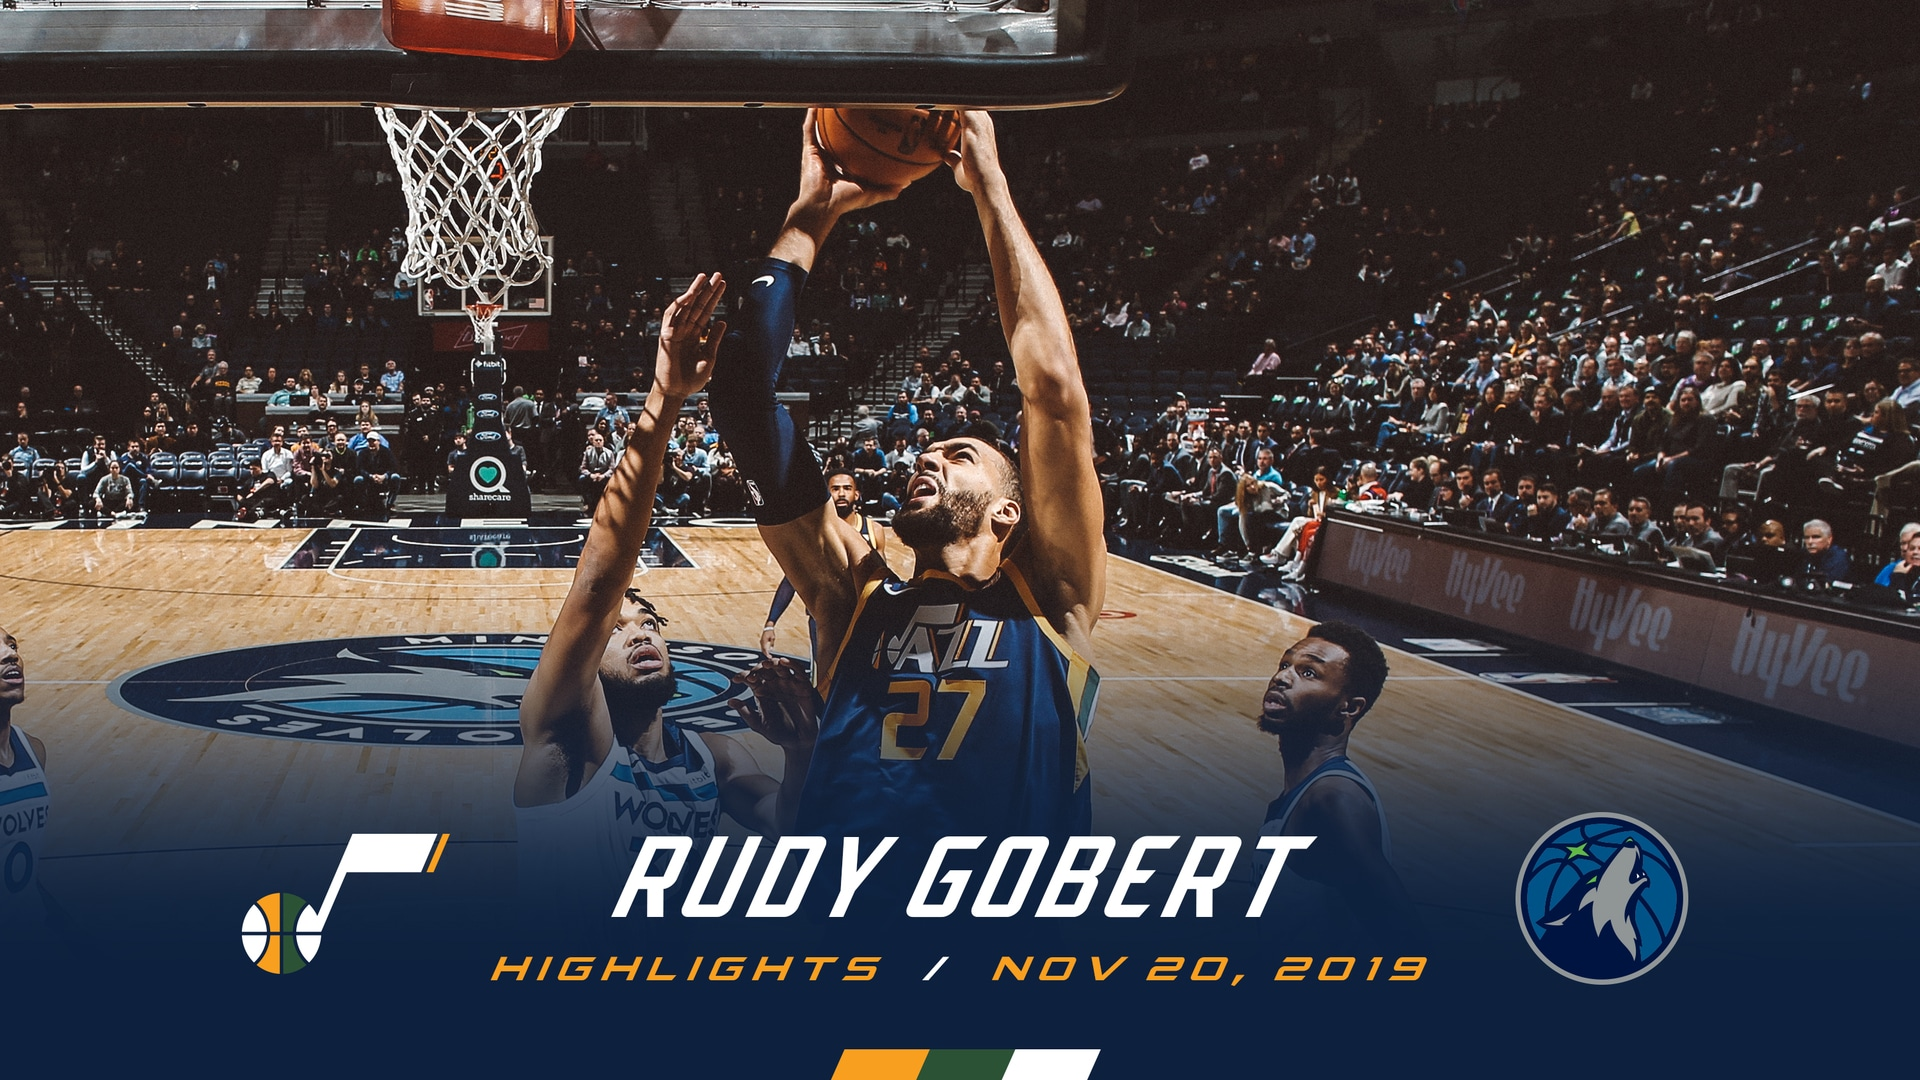 Highlights: Rudy Gobert—15 rebounds, 12 points